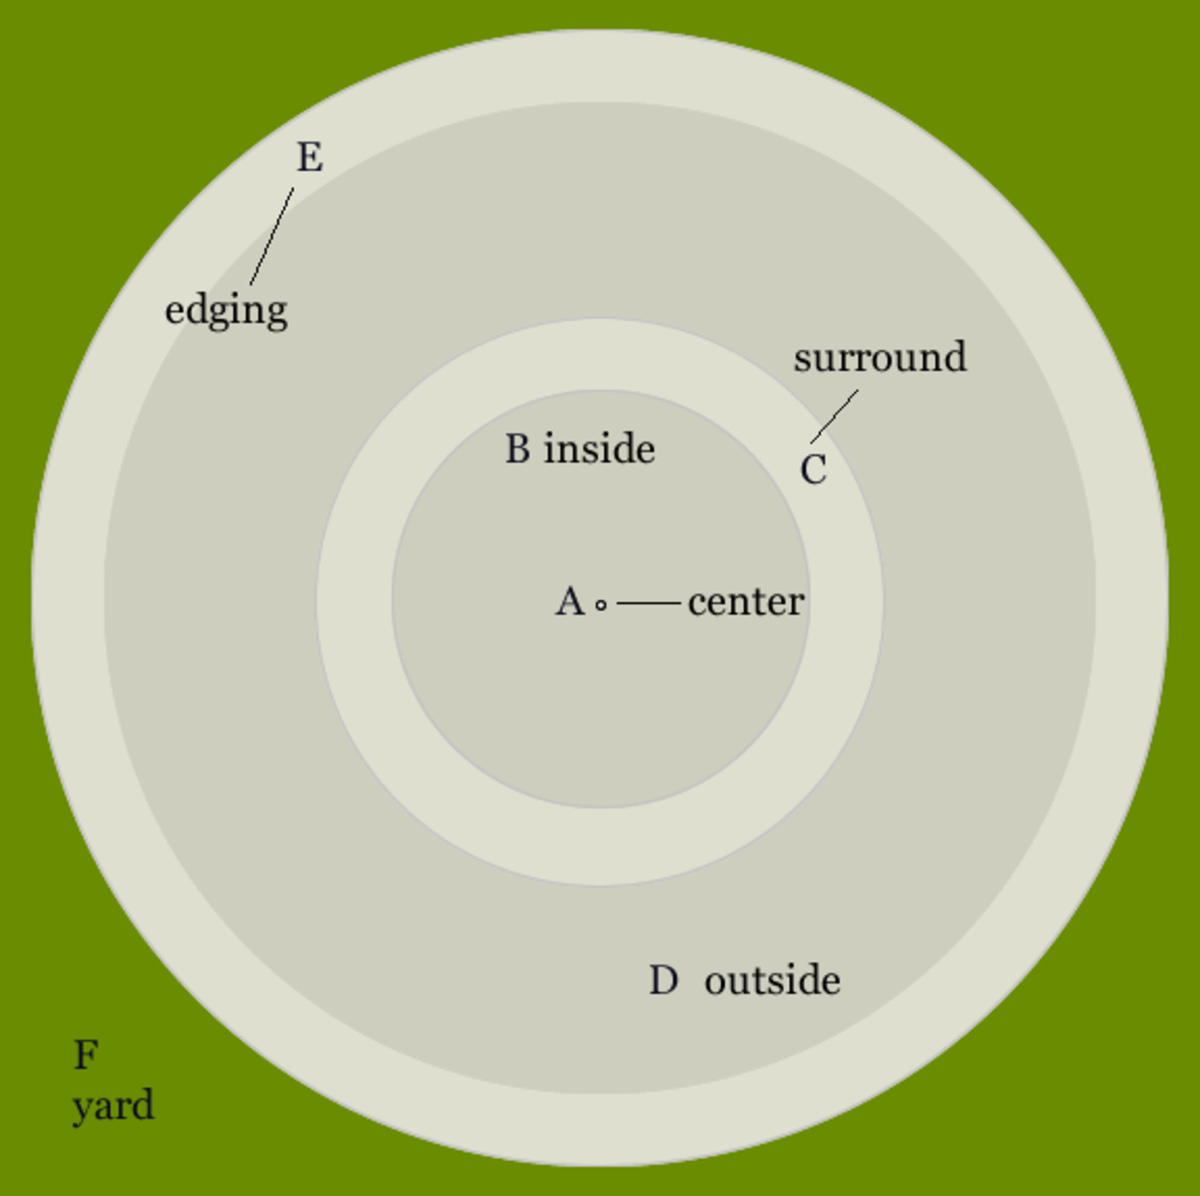 Sections (A-E) to measure for circular surround.